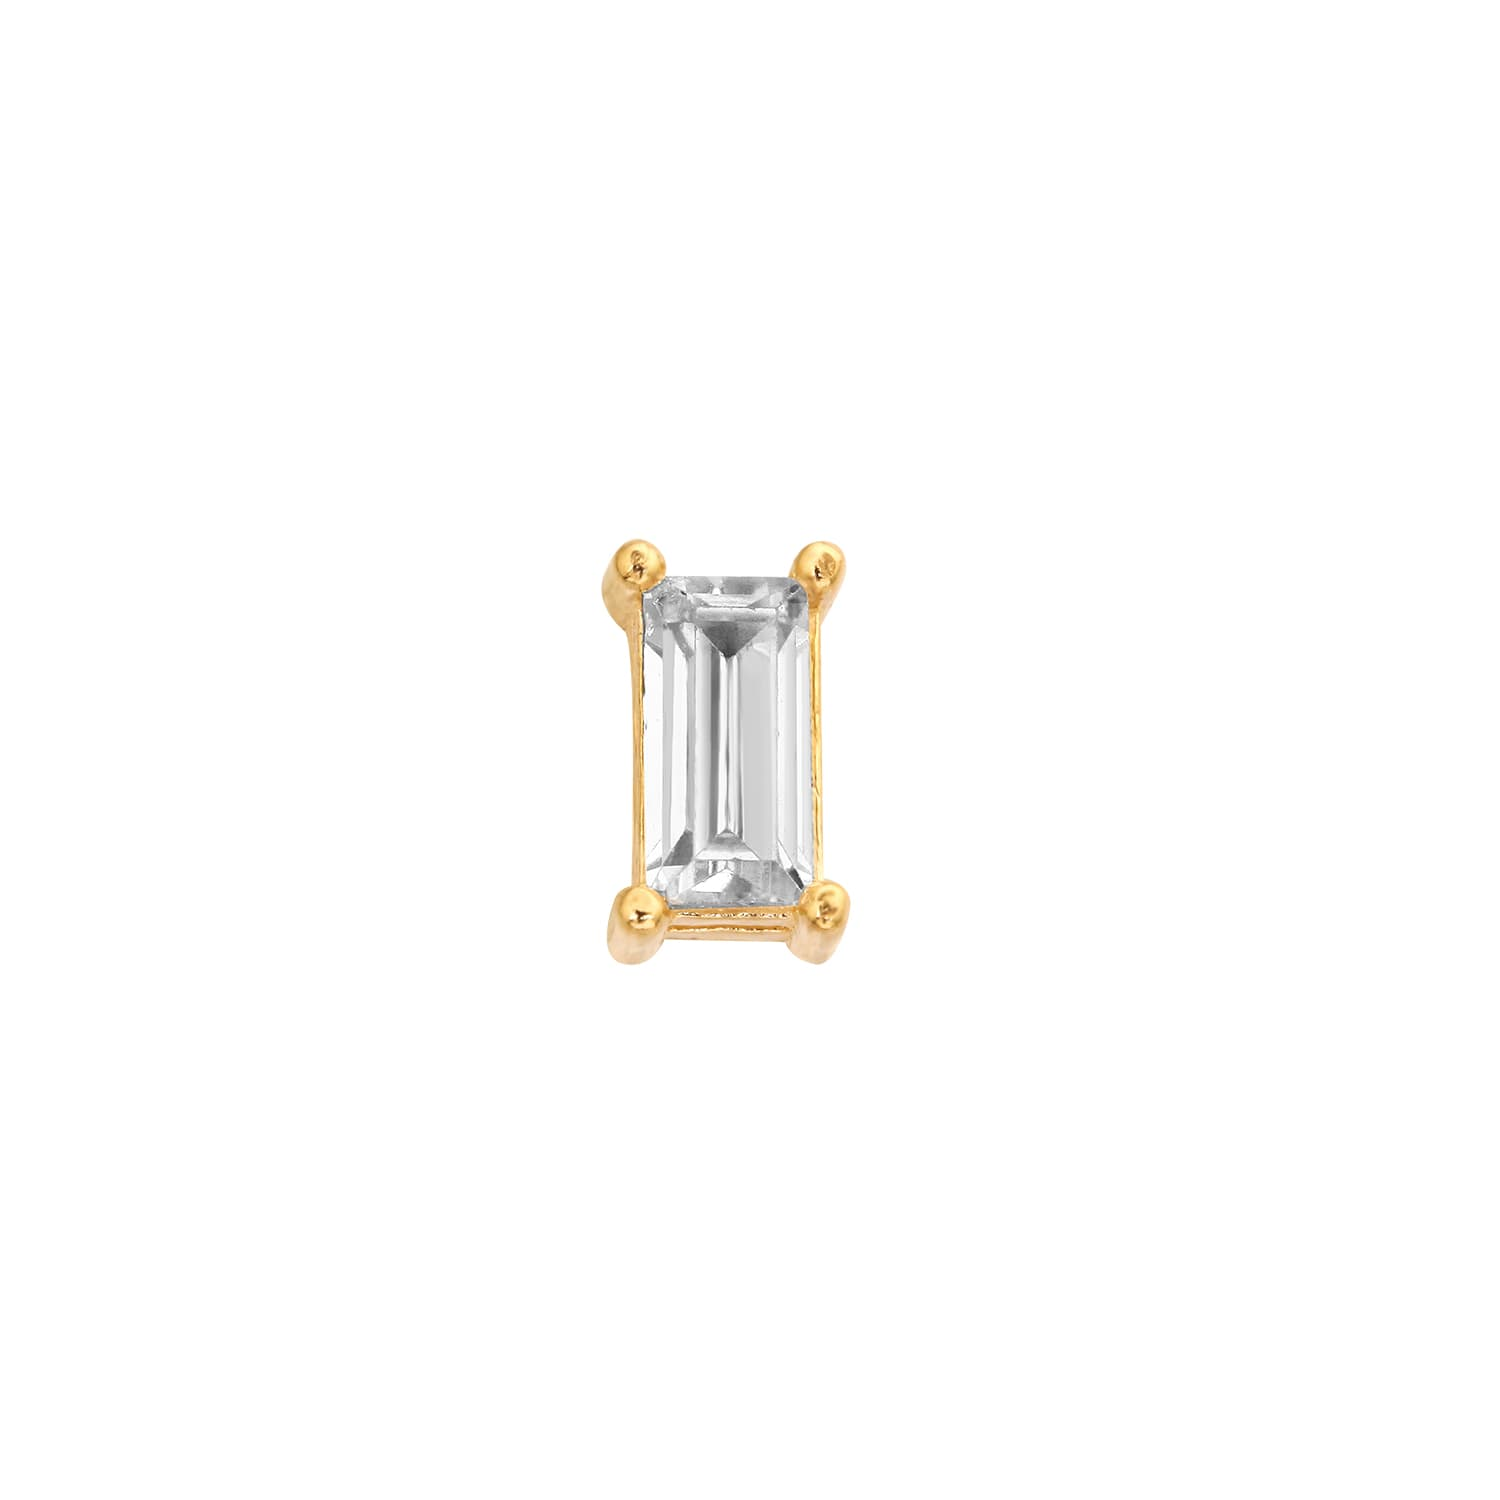 14k gold piercing with baguette stone